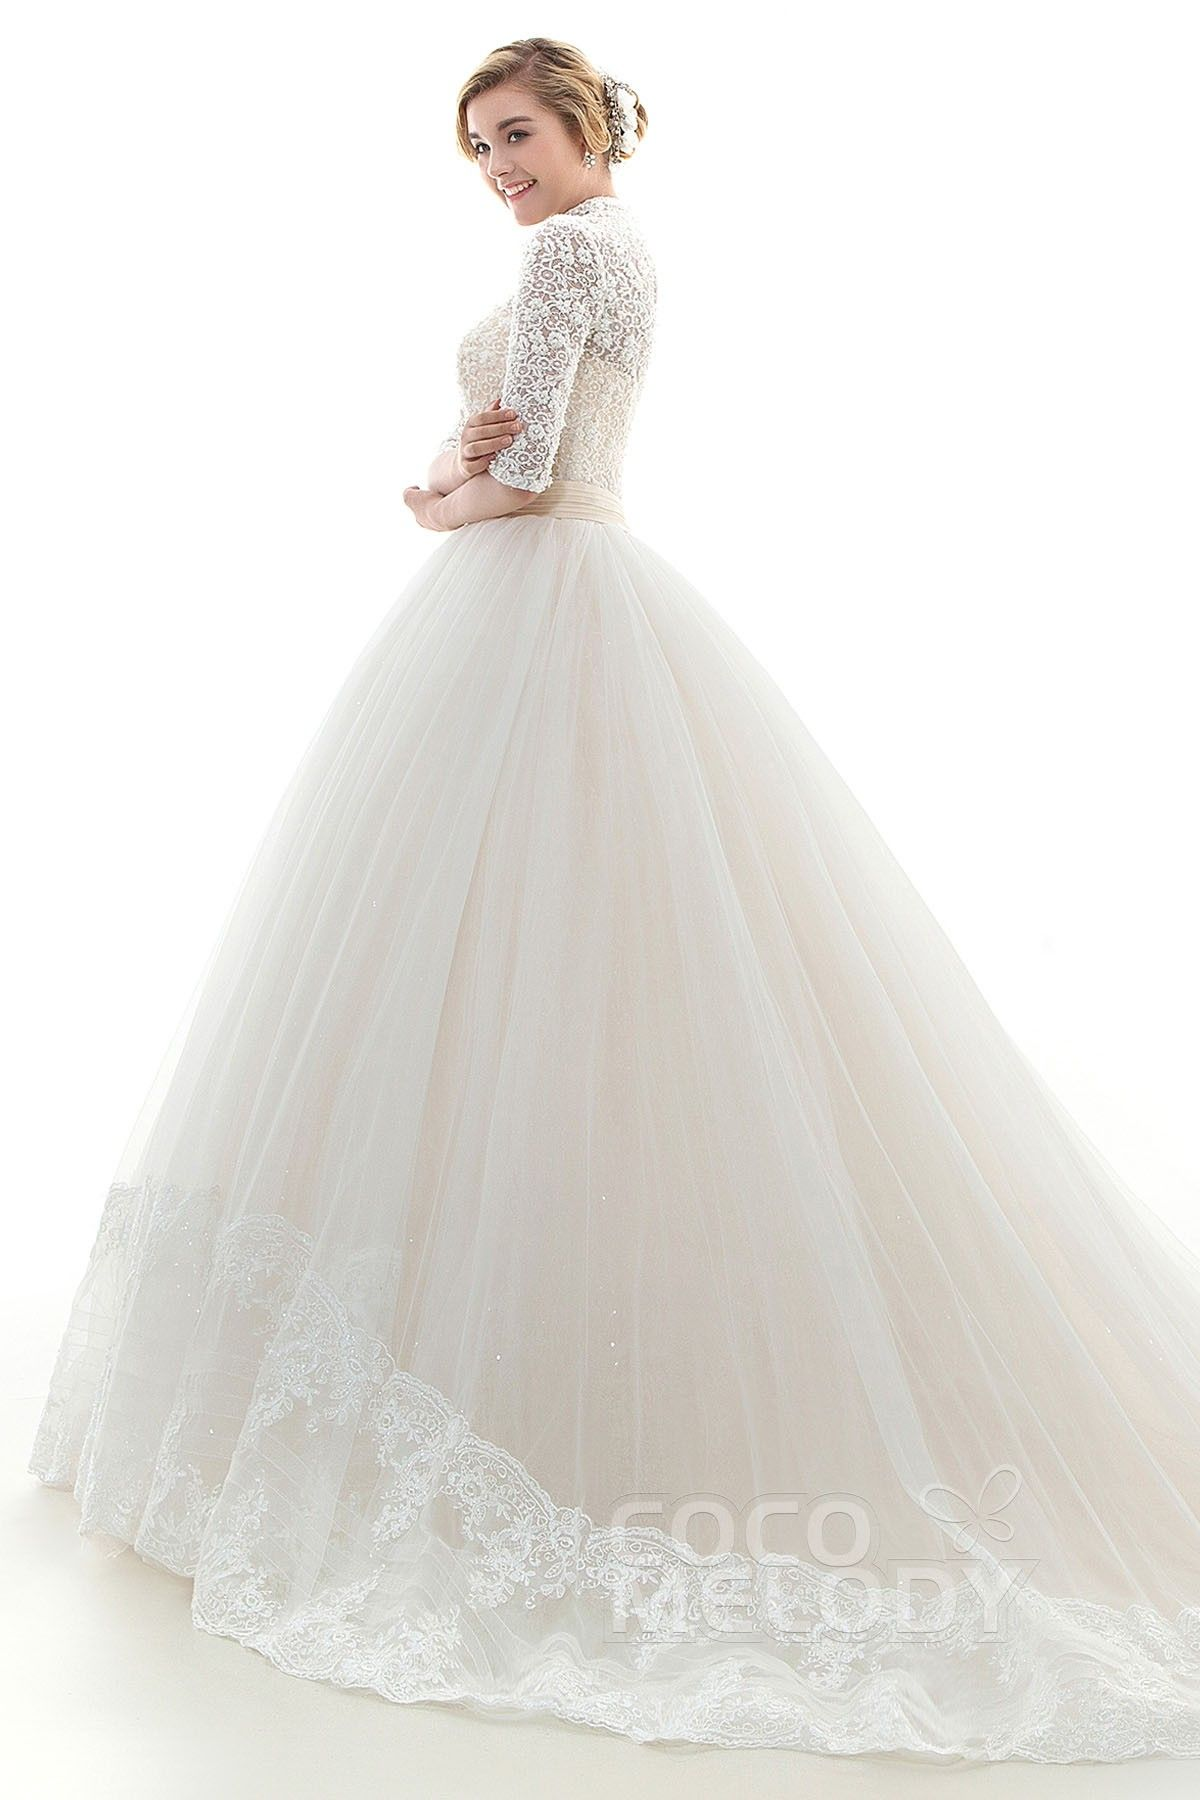 Modern aline high neck natural chapel train tulle ivorychampagne